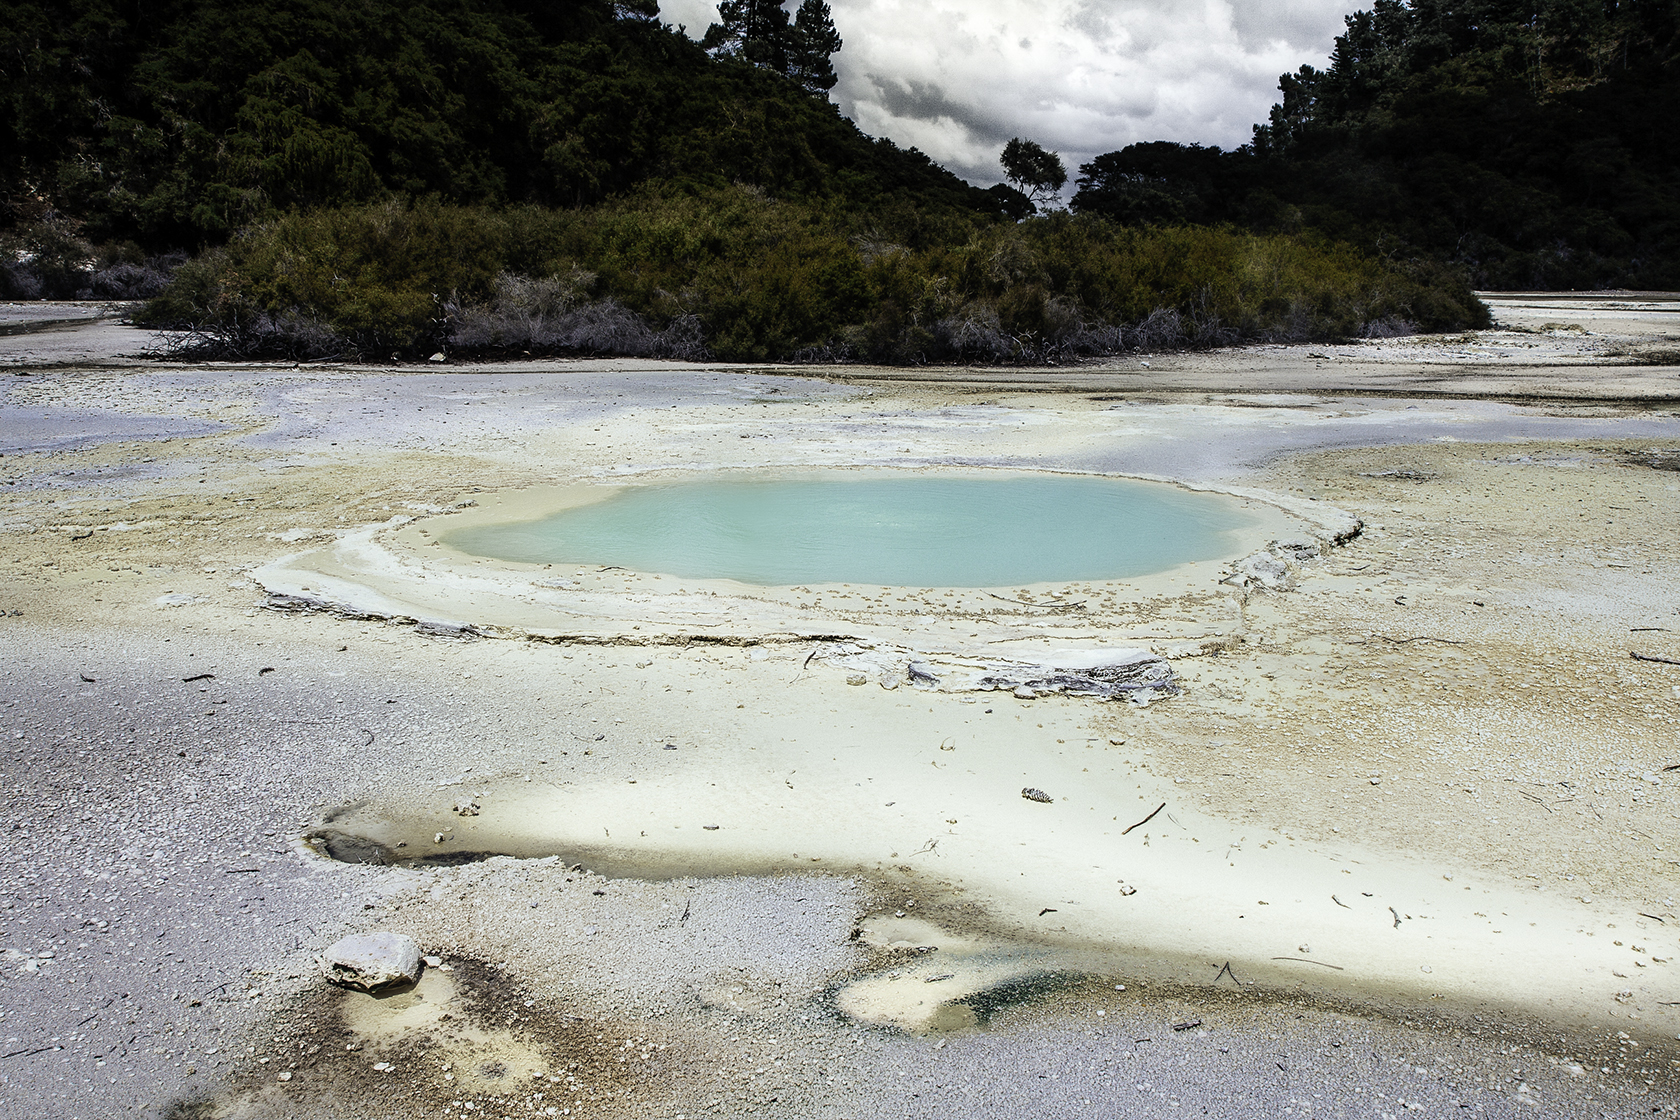 nz_geyser_blue_01_small.jpg